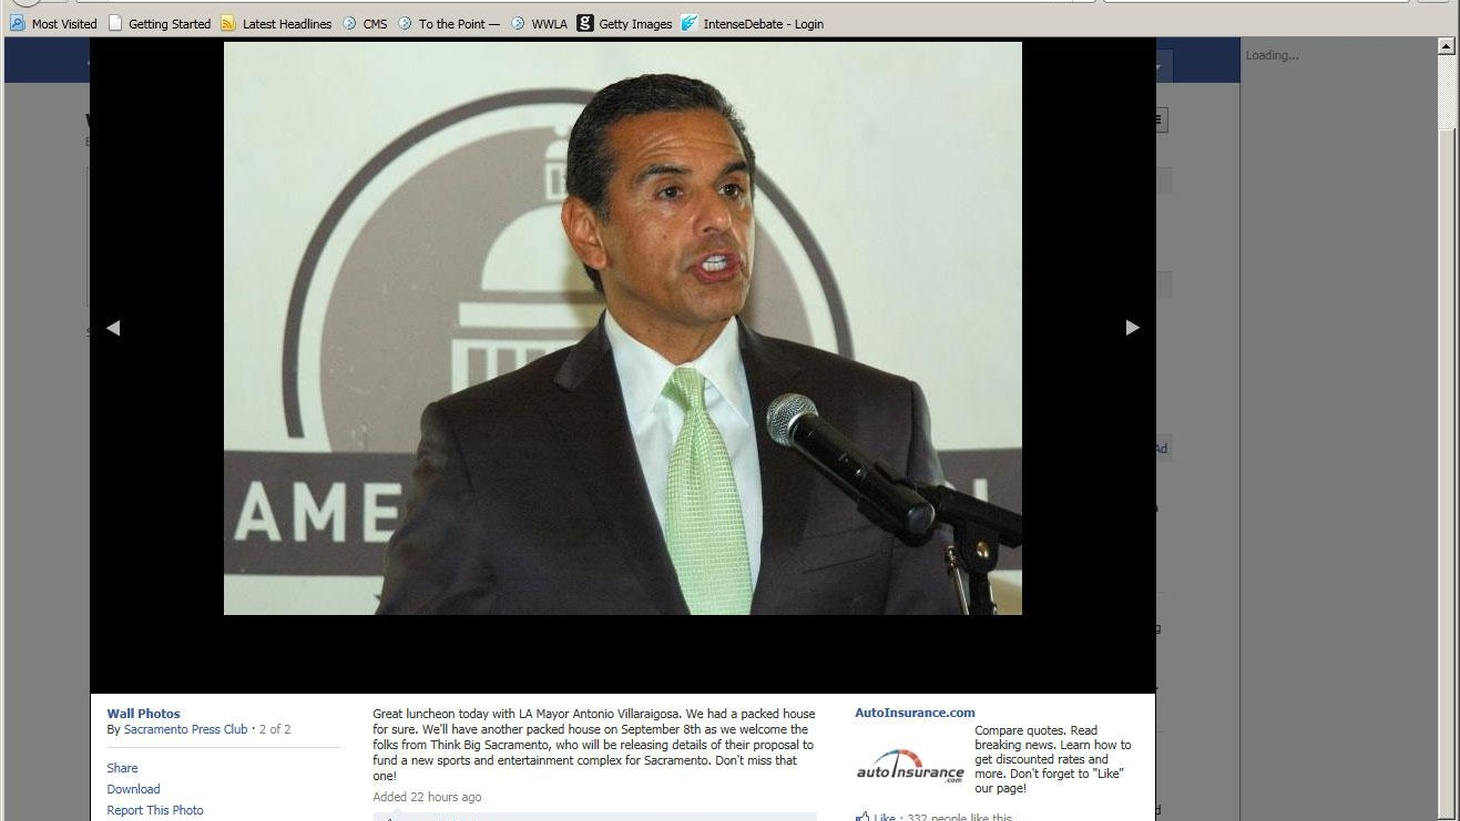 """Mayor Villaraigosa calls for changes to Proposition 13, describing California's corporatetax structure a """"Swiss cheese of loopholes and exemptions...."""""""